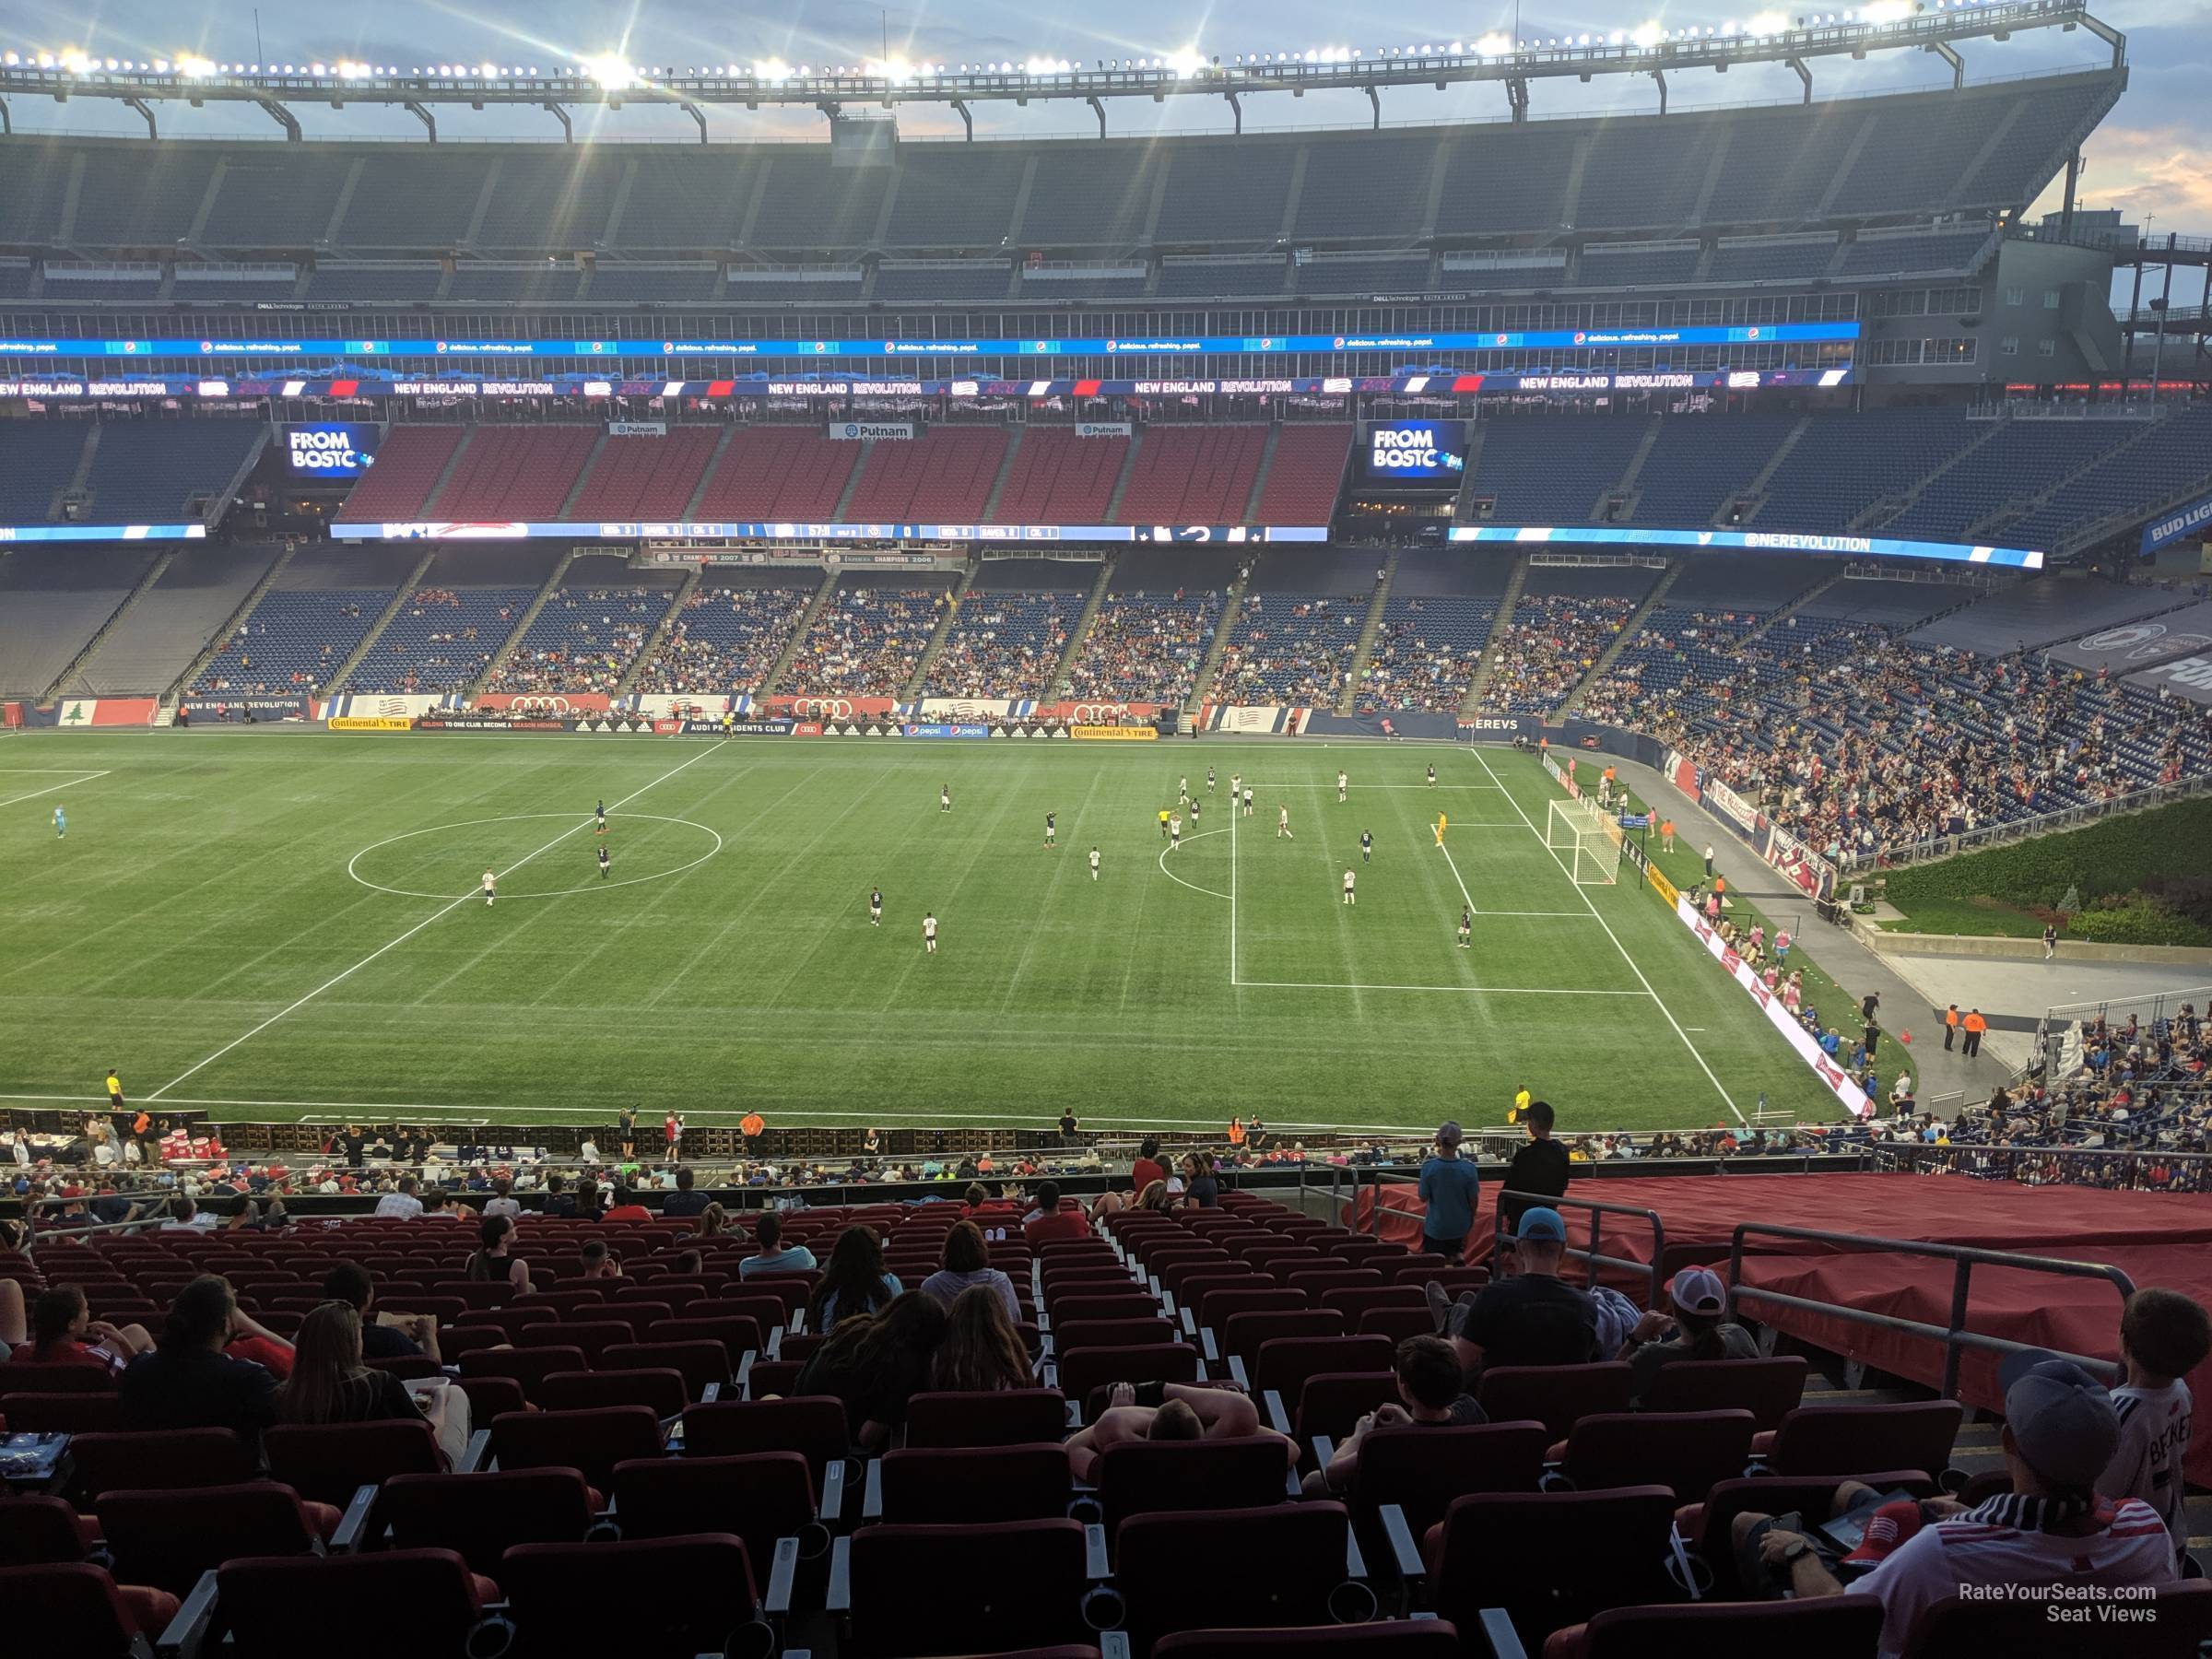 Section CL7 seat view